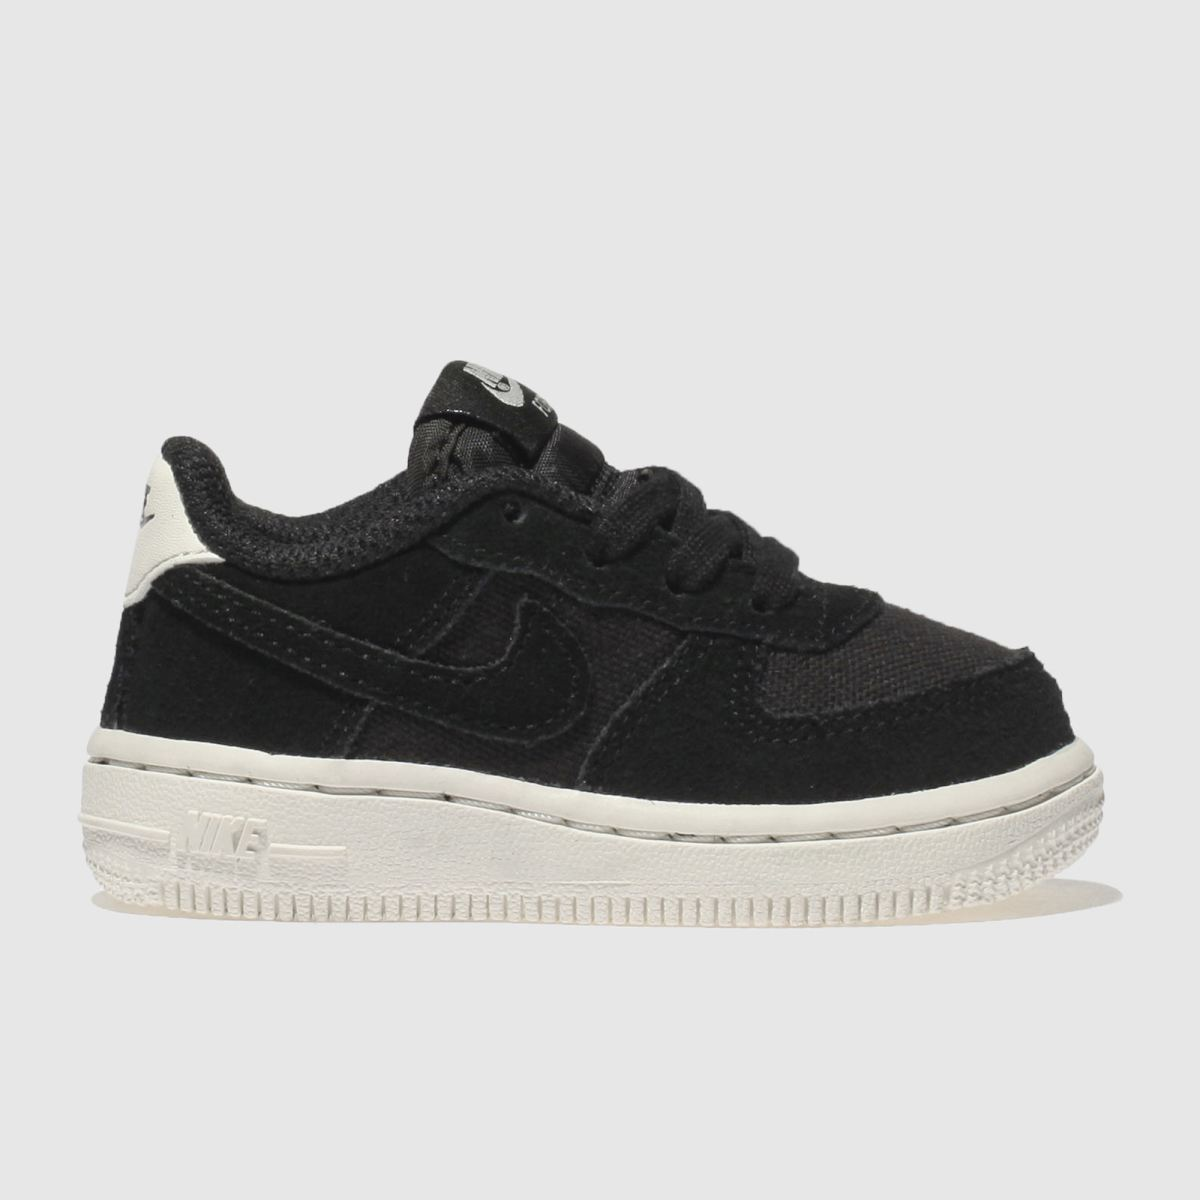 Nike Black & White Air Force 1 Trainers Toddler